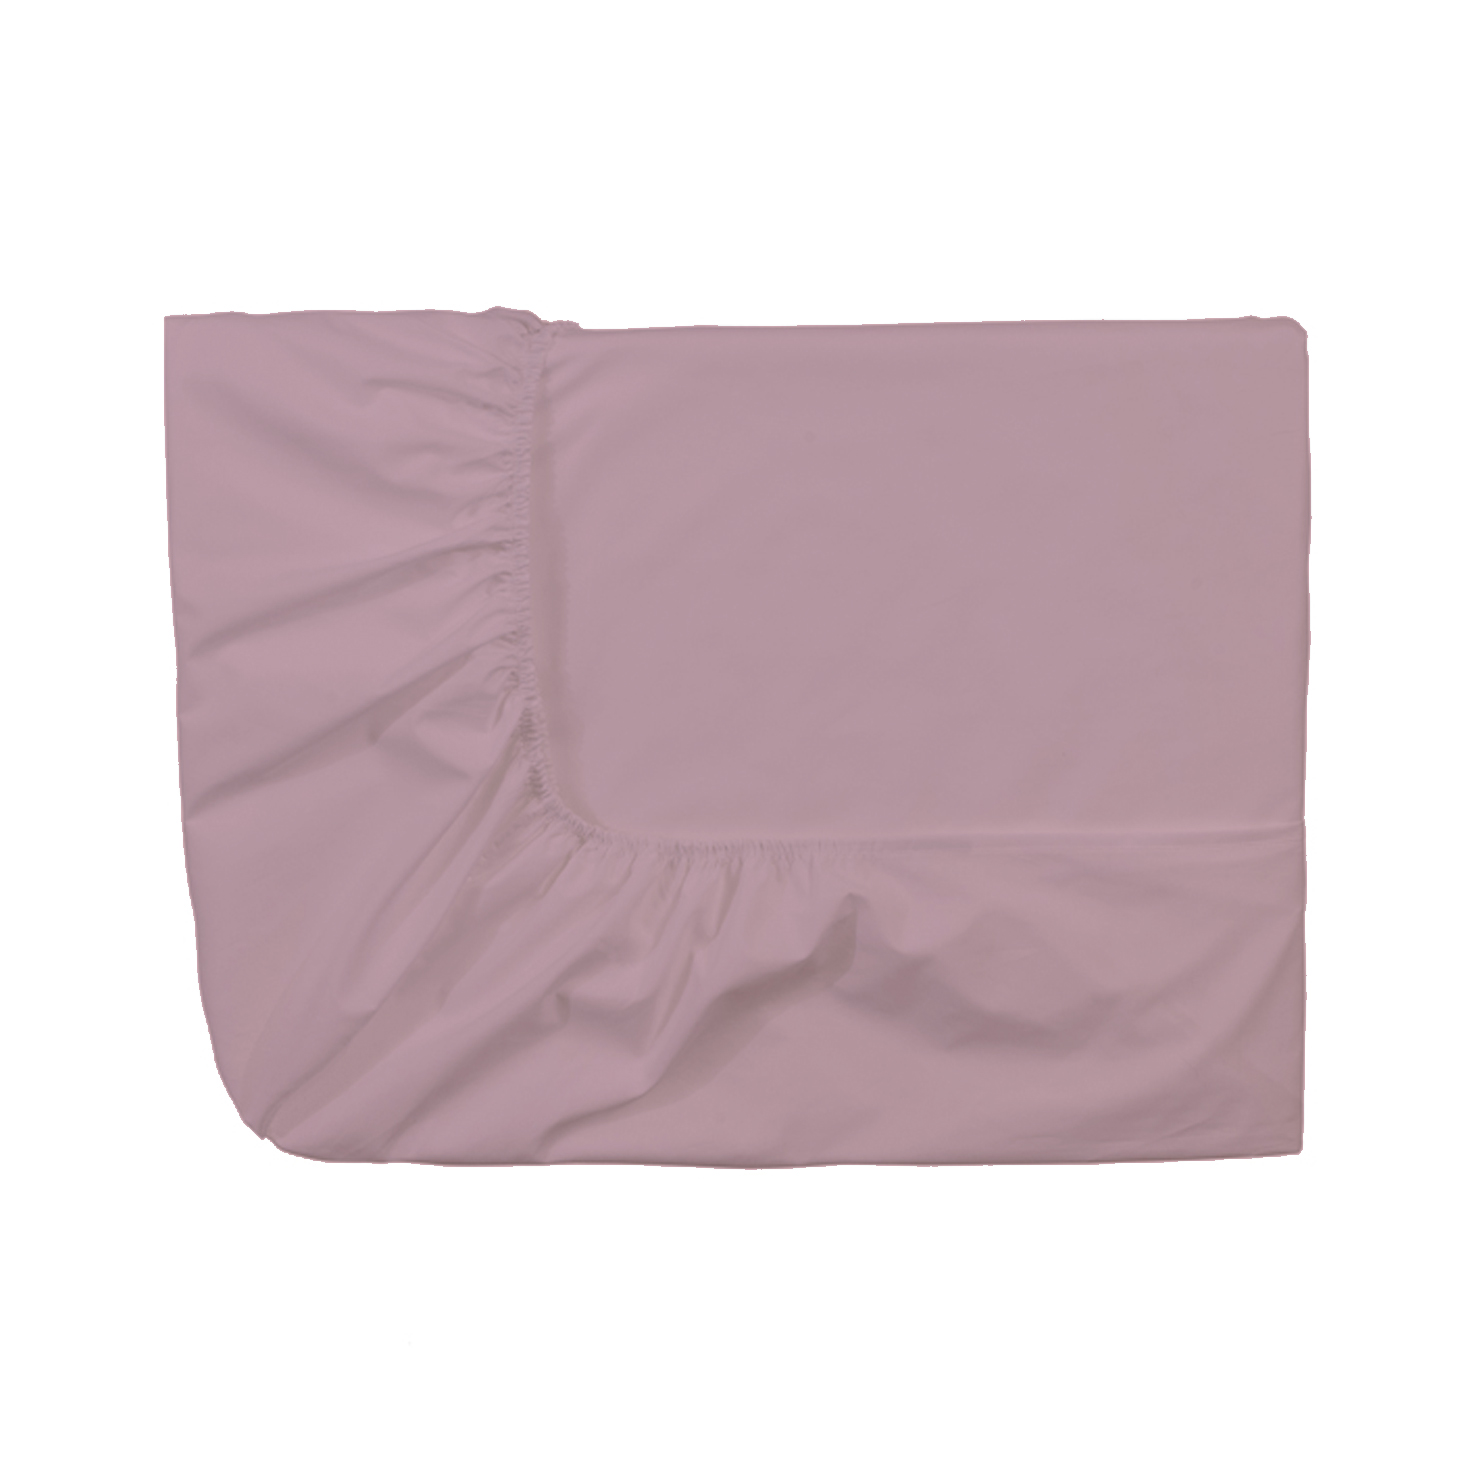 Essix housse de couette percale royal home 140 x 200 cm - Linge de lit percale ...